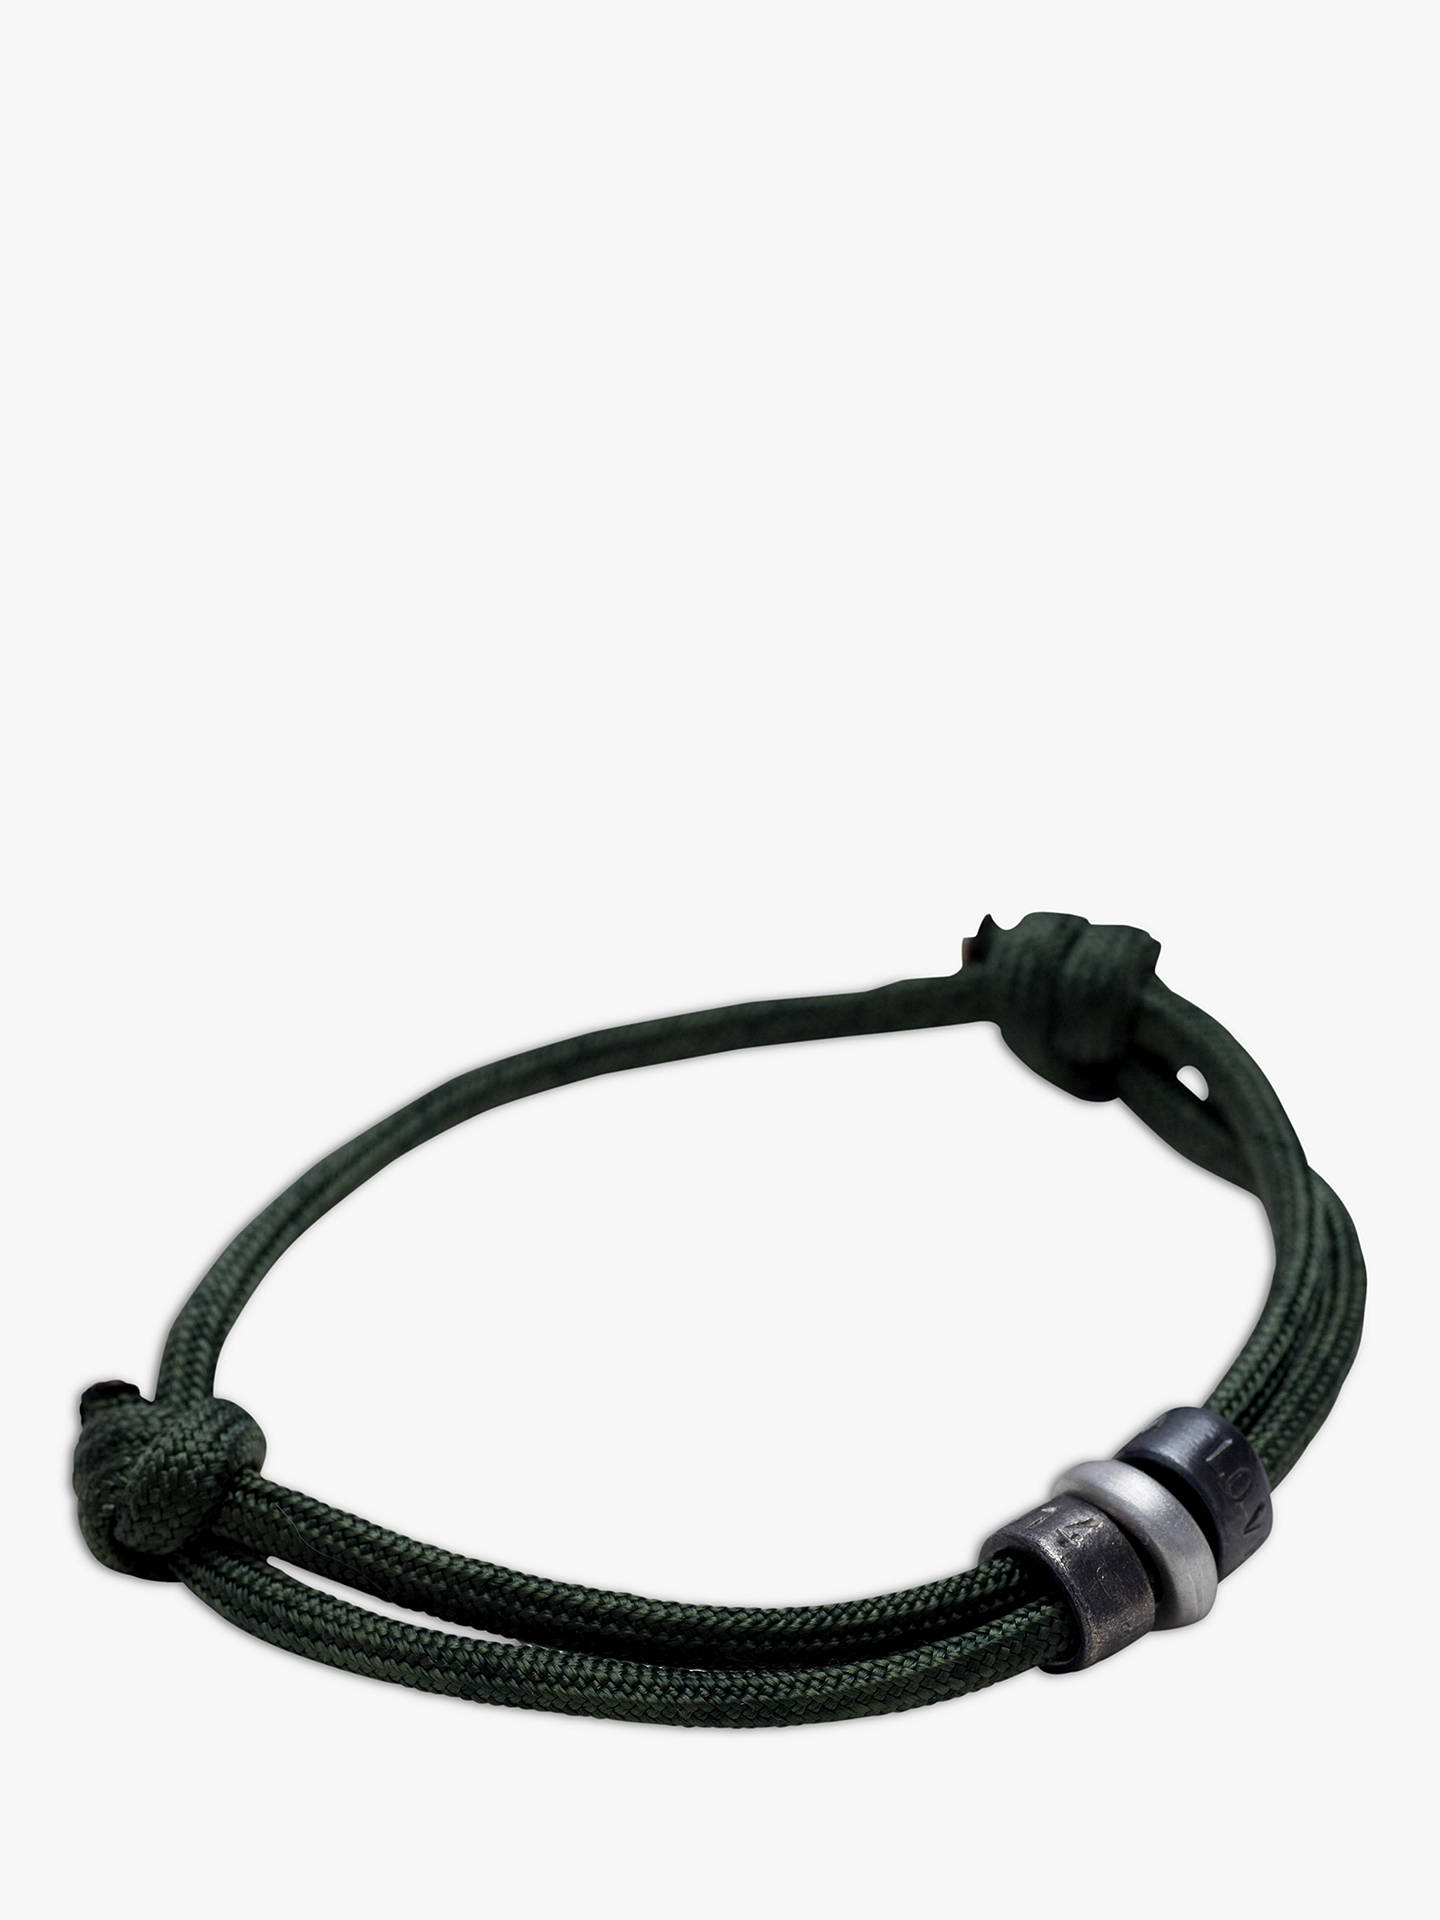 Buy Chambers & Beau Personalised Men's Bead Rope Bracelet Online at johnlewis.com